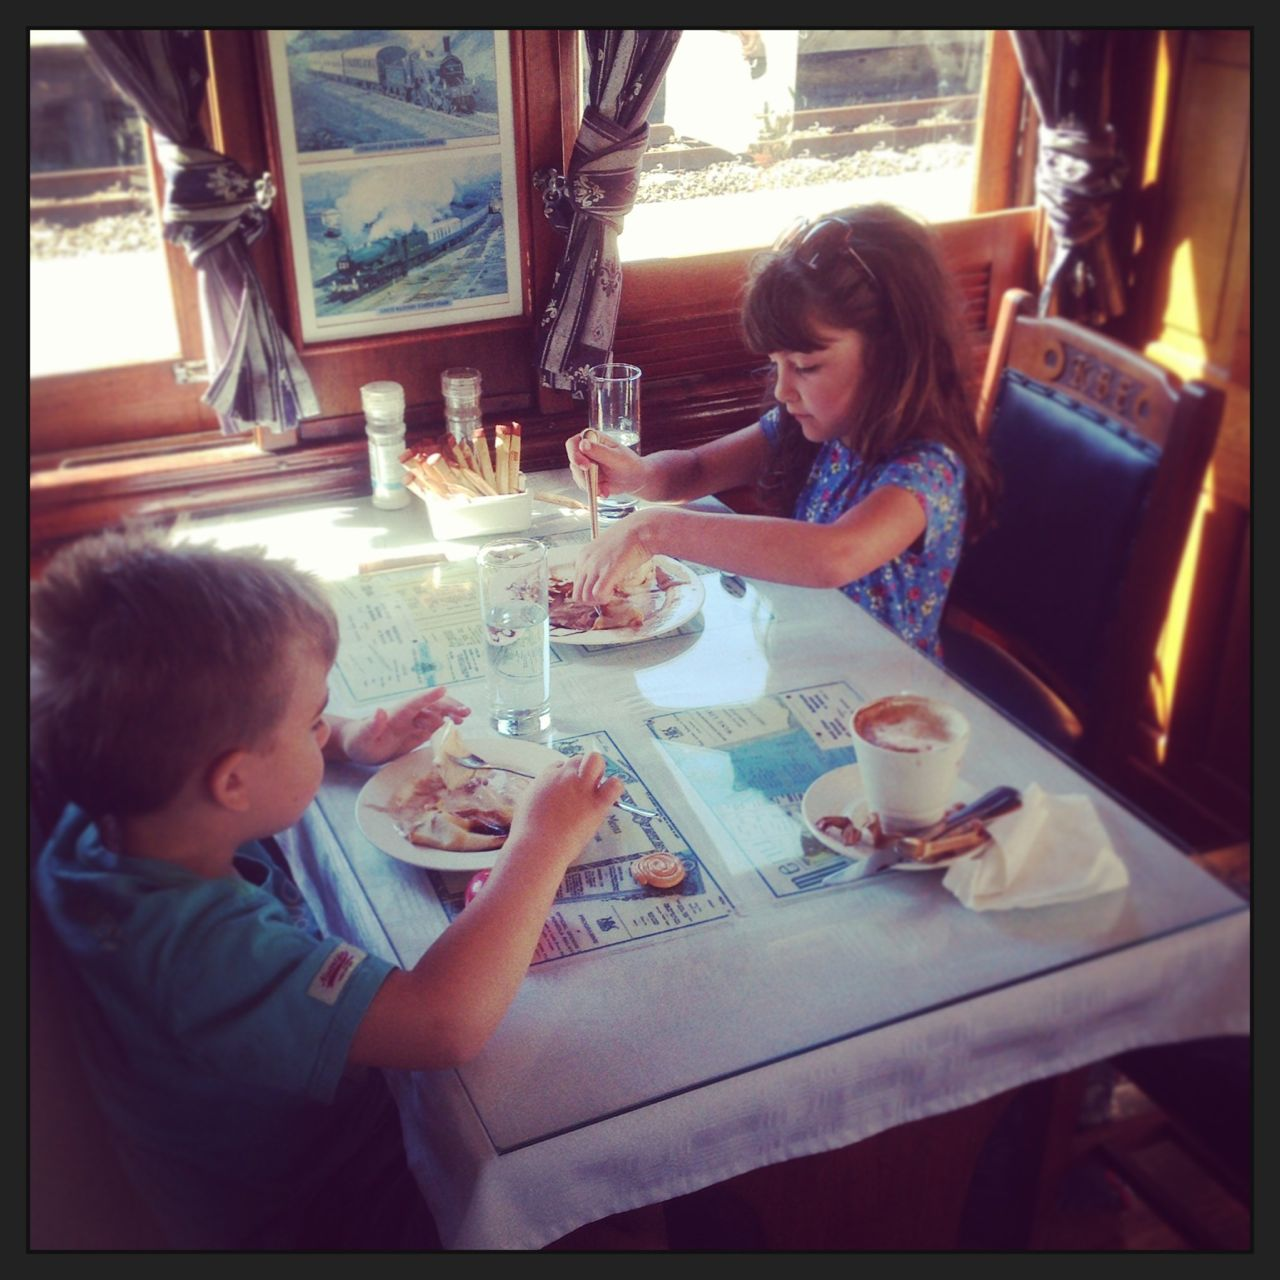 Enjoying pancakes in an old train (converted into a coffee shop) in Kalk Bay...